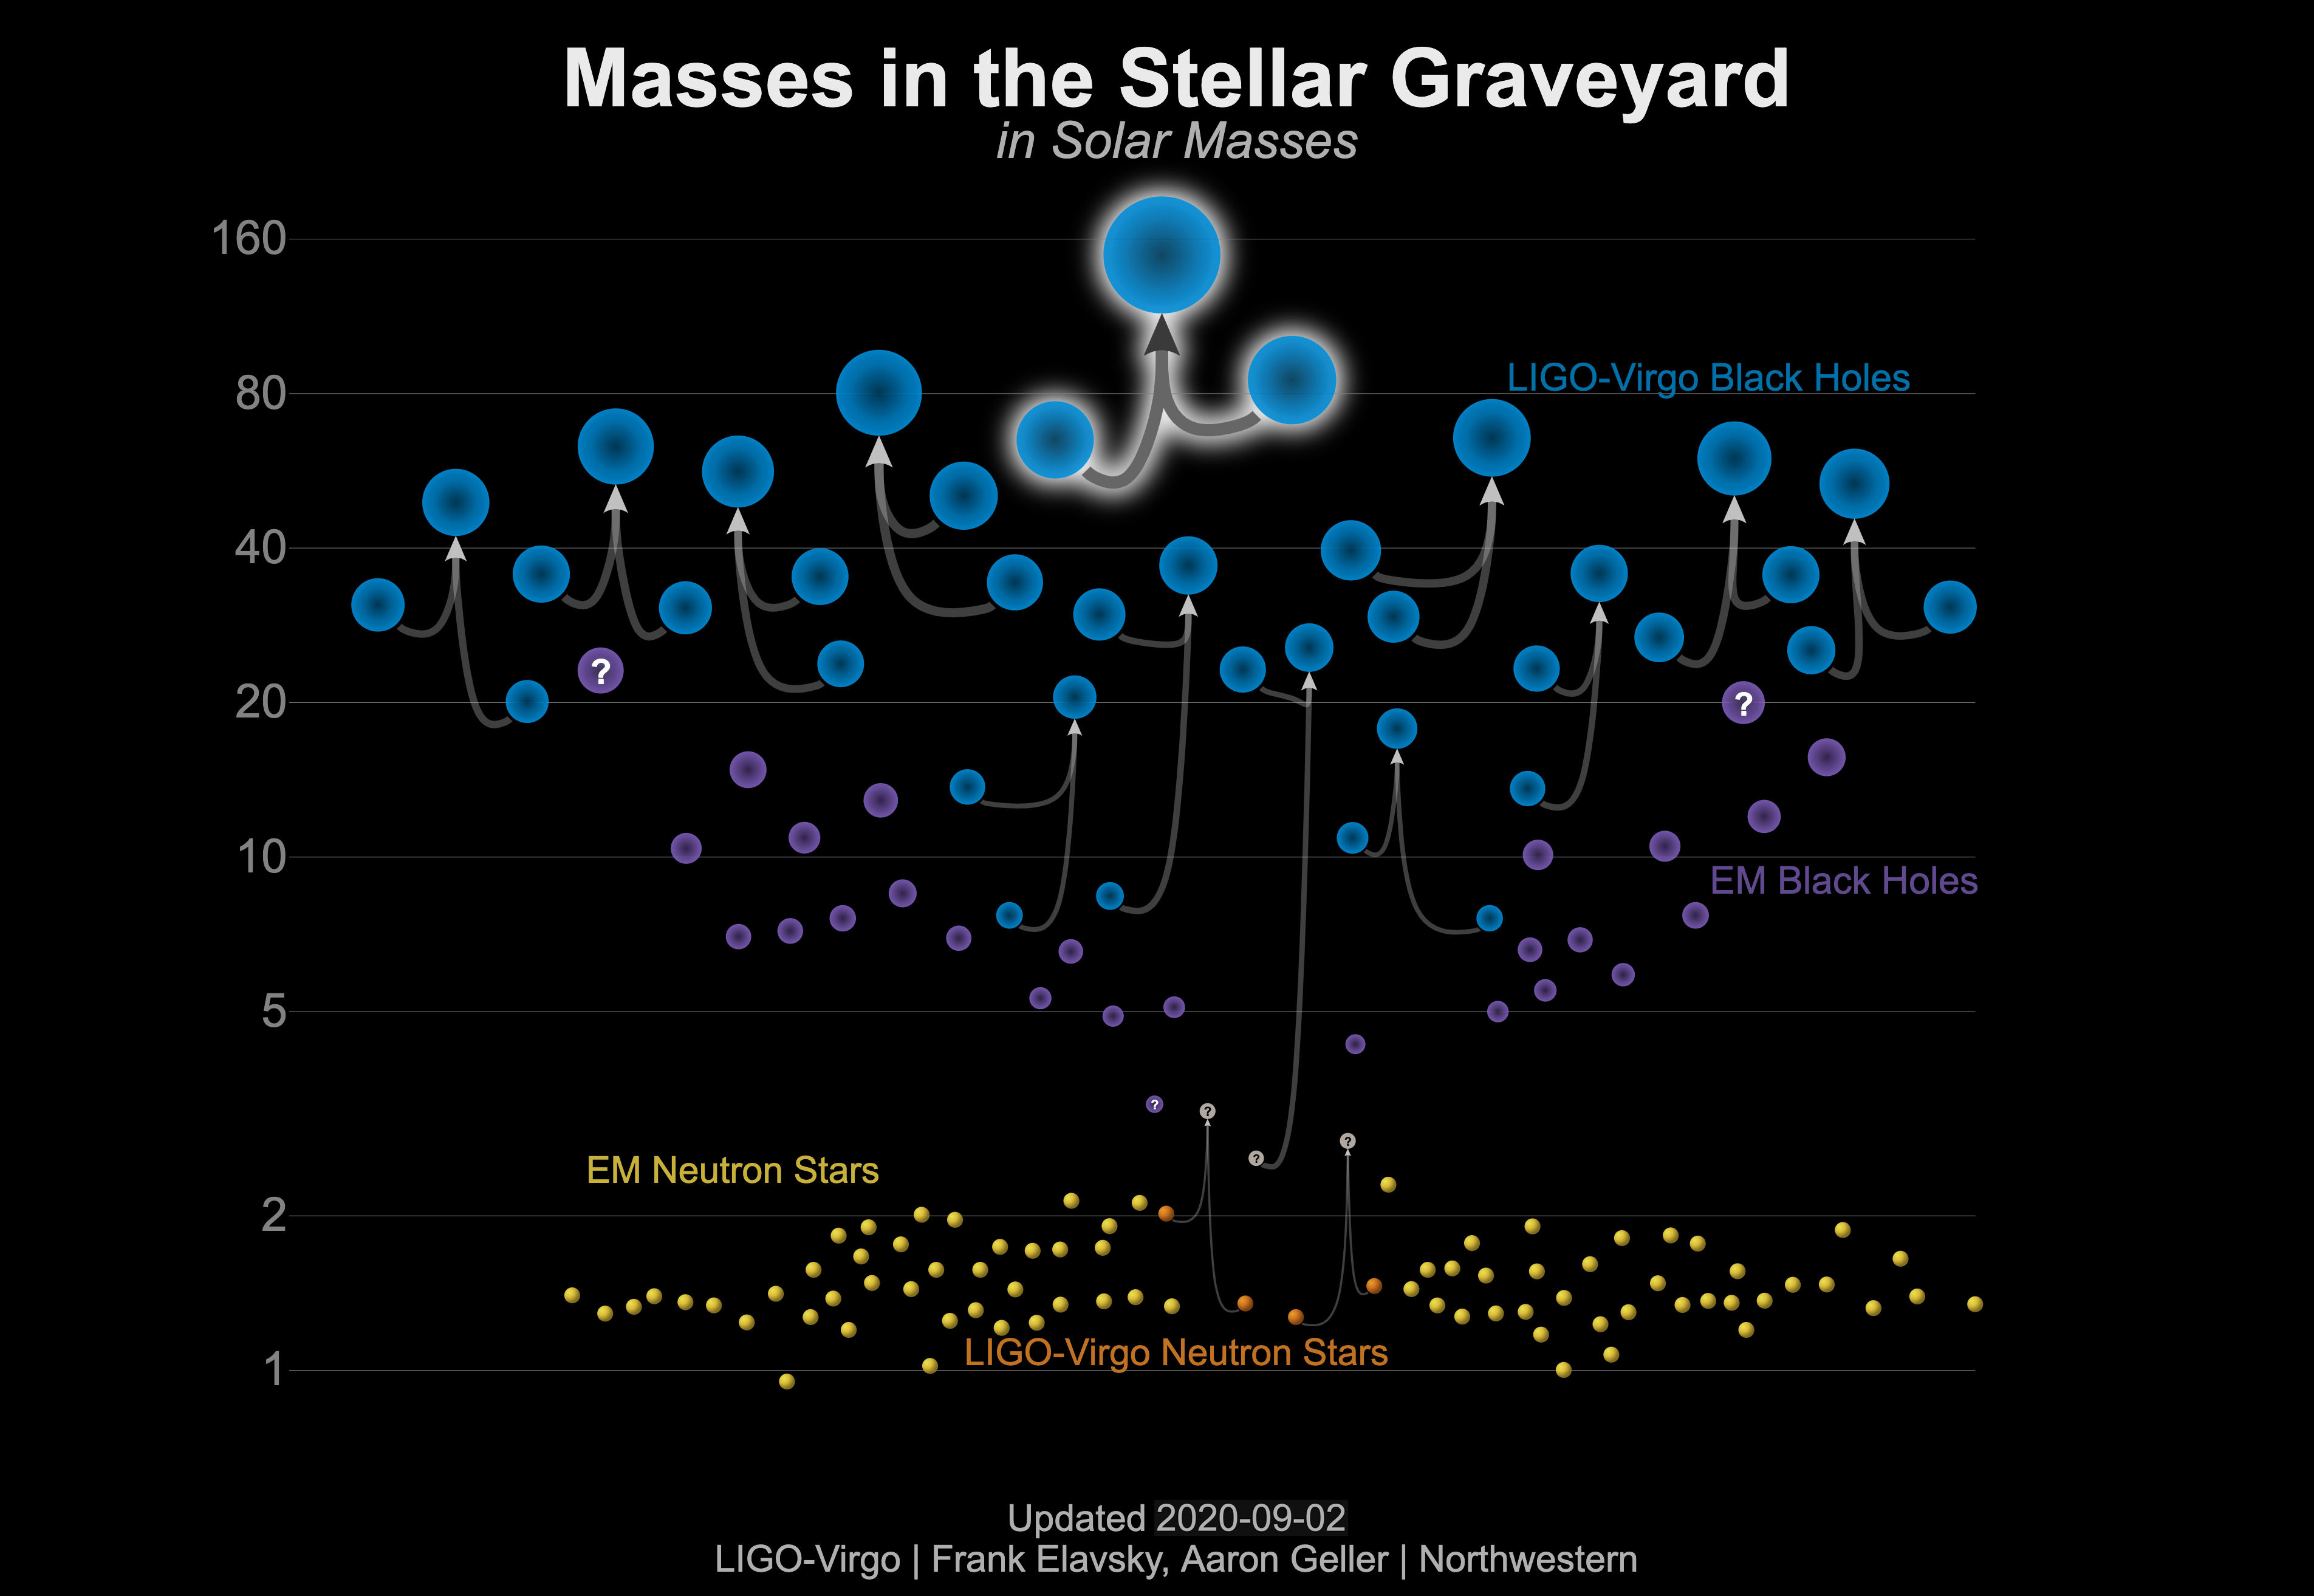 Diagram which plots the merger events witnessed by LIGO and other means. At the bottom it shows neutron star mergers, and going up it shows black hole mergers. The y-axis represents increasing mass.